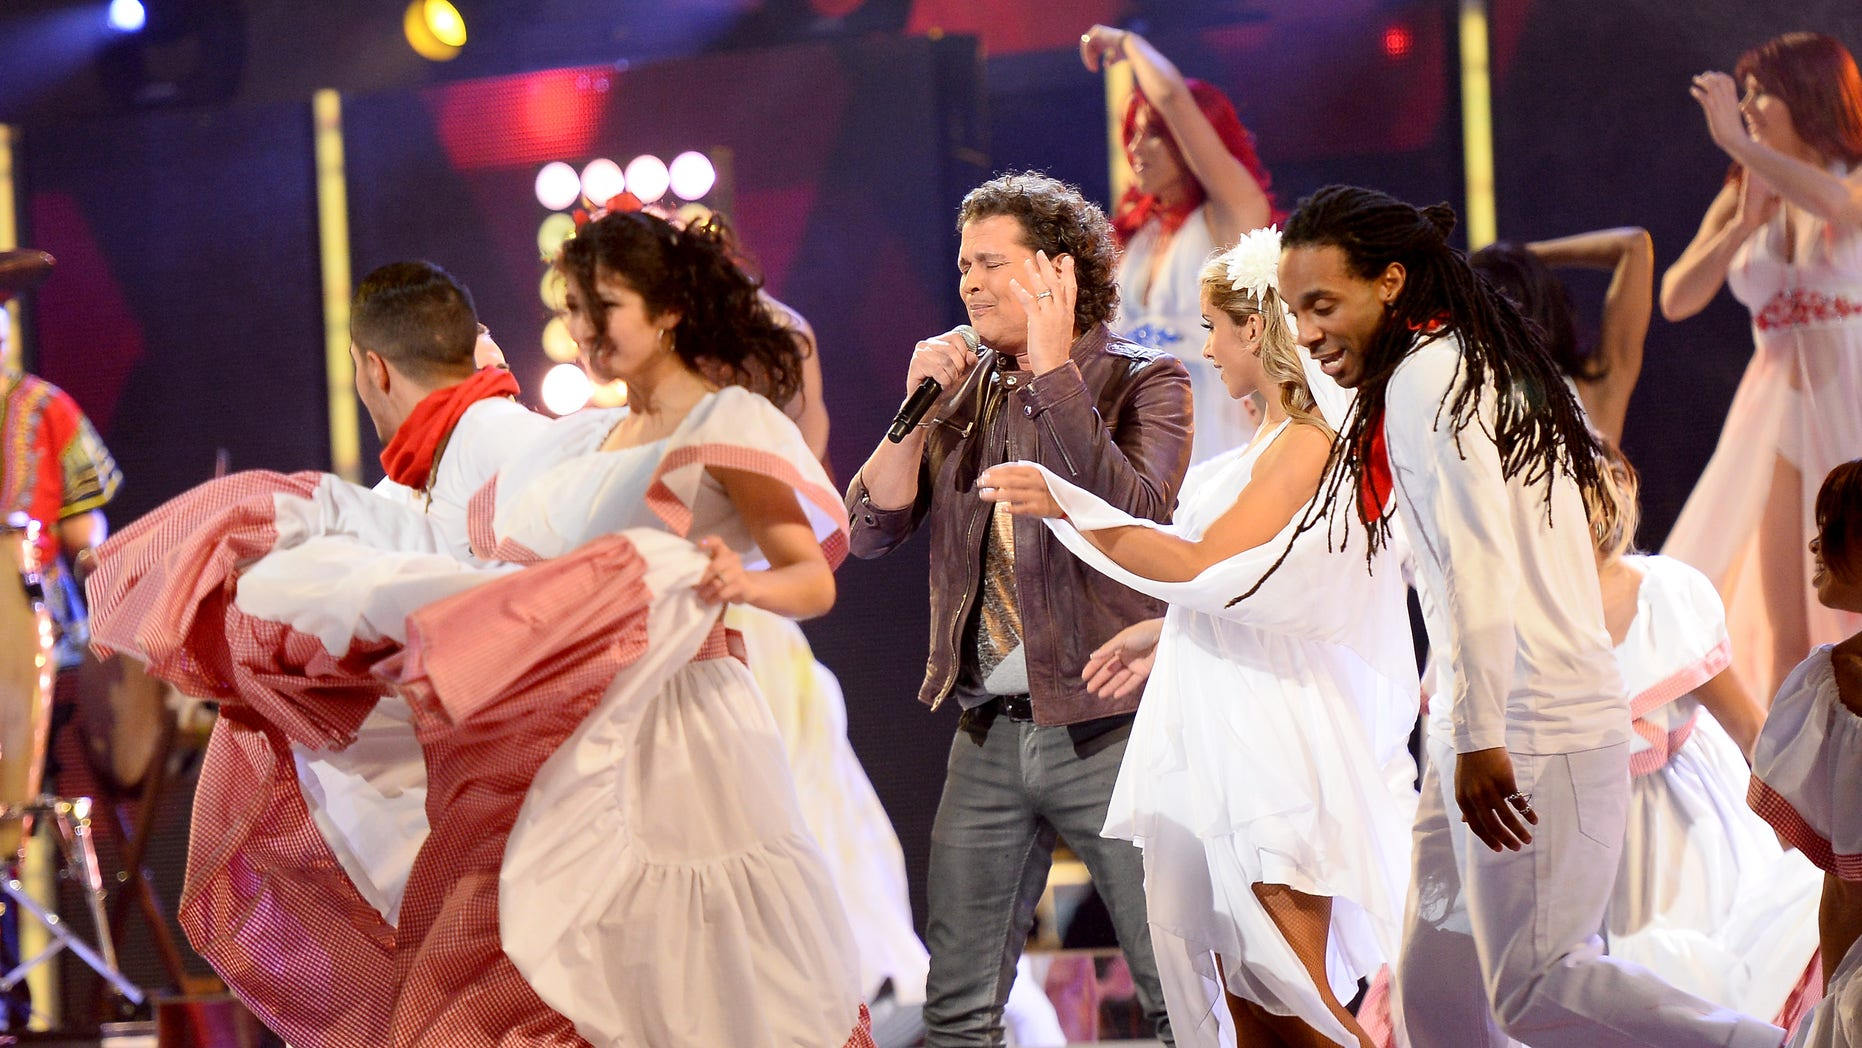 LAS VEGAS, NV - NOVEMBER 21:  Singer Carlos Vives onstage during the 14th Annual Latin GRAMMY Awards held at the Mandalay Bay Events Center on November 21, 2013 in Las Vegas, Nevada.  (Photo by Ethan Miller/Getty Images for LARAS)